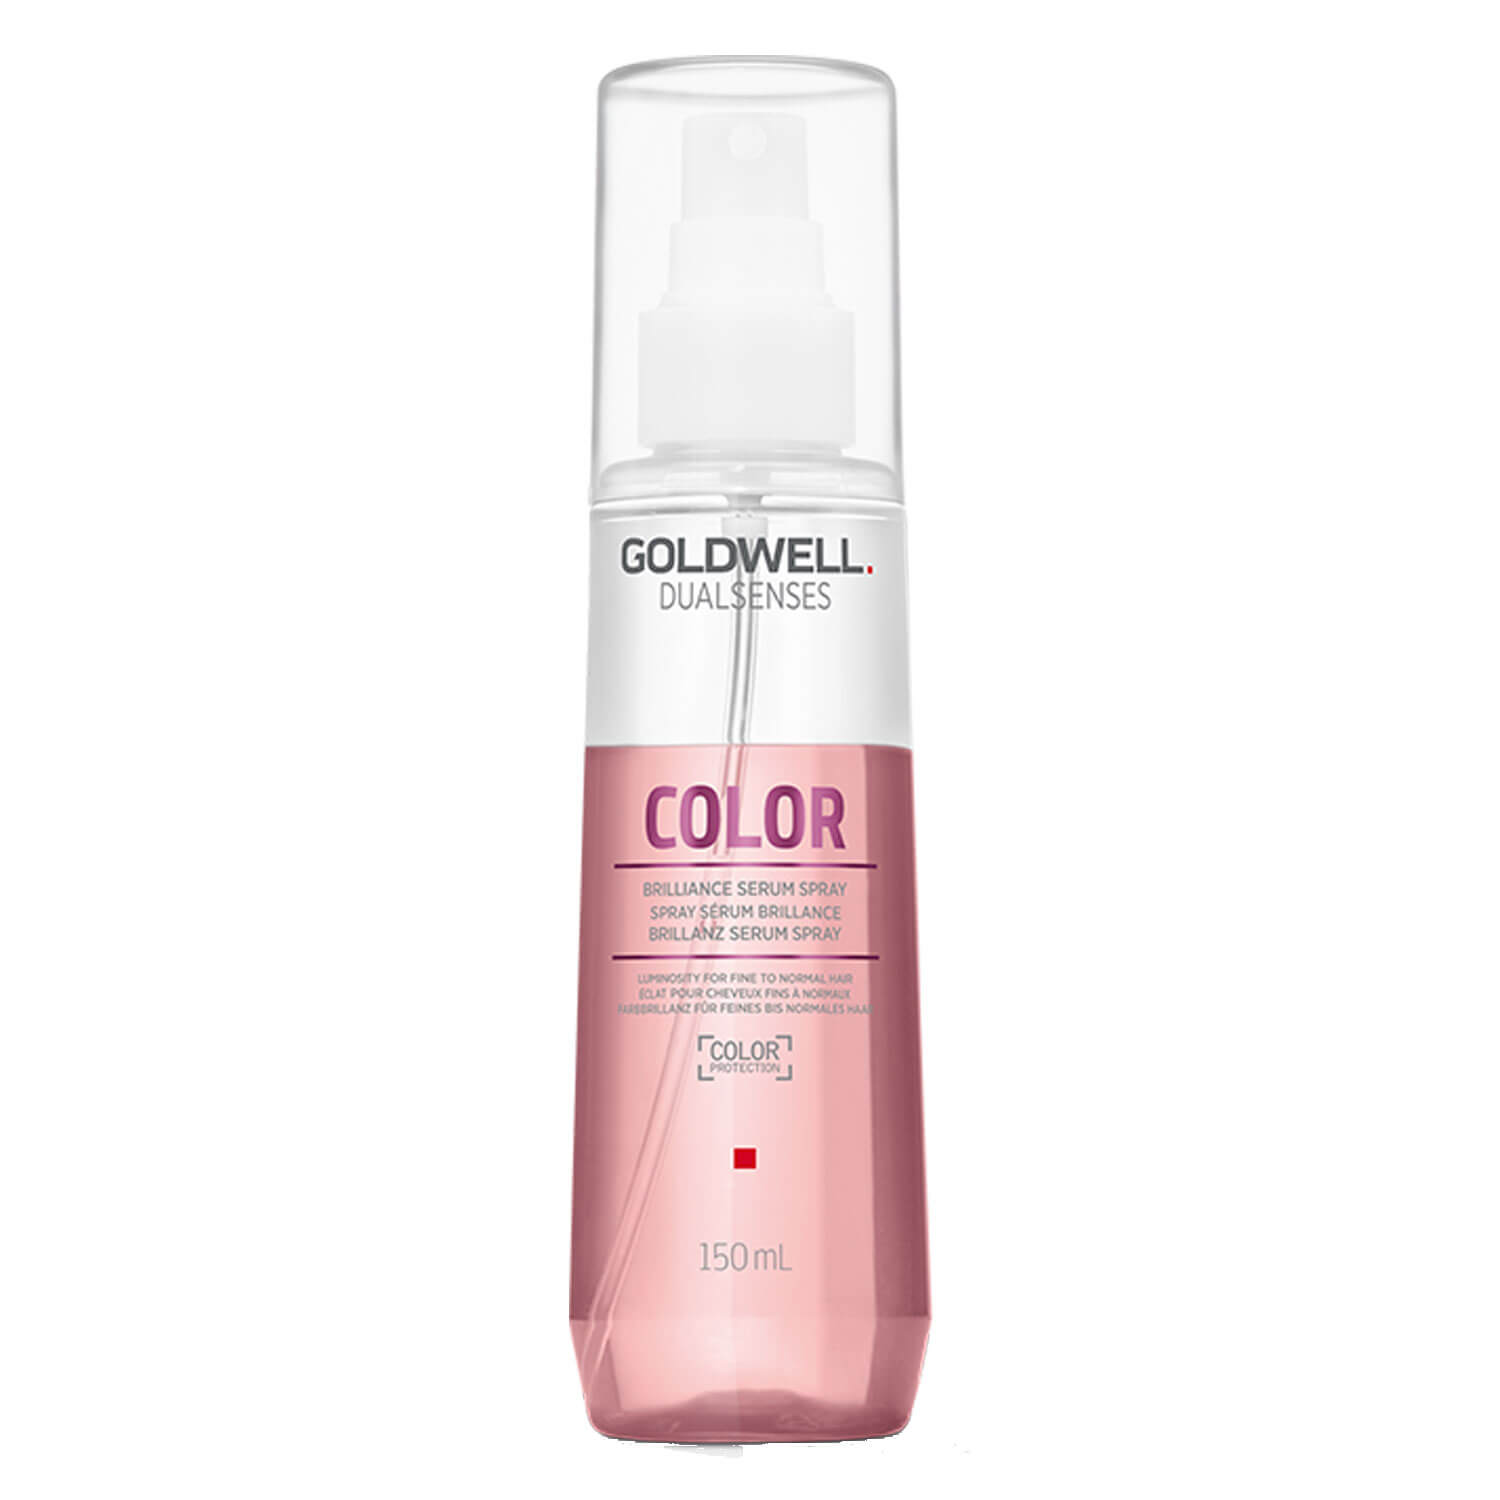 Dualsenses Color - Brilliance Serum Spray